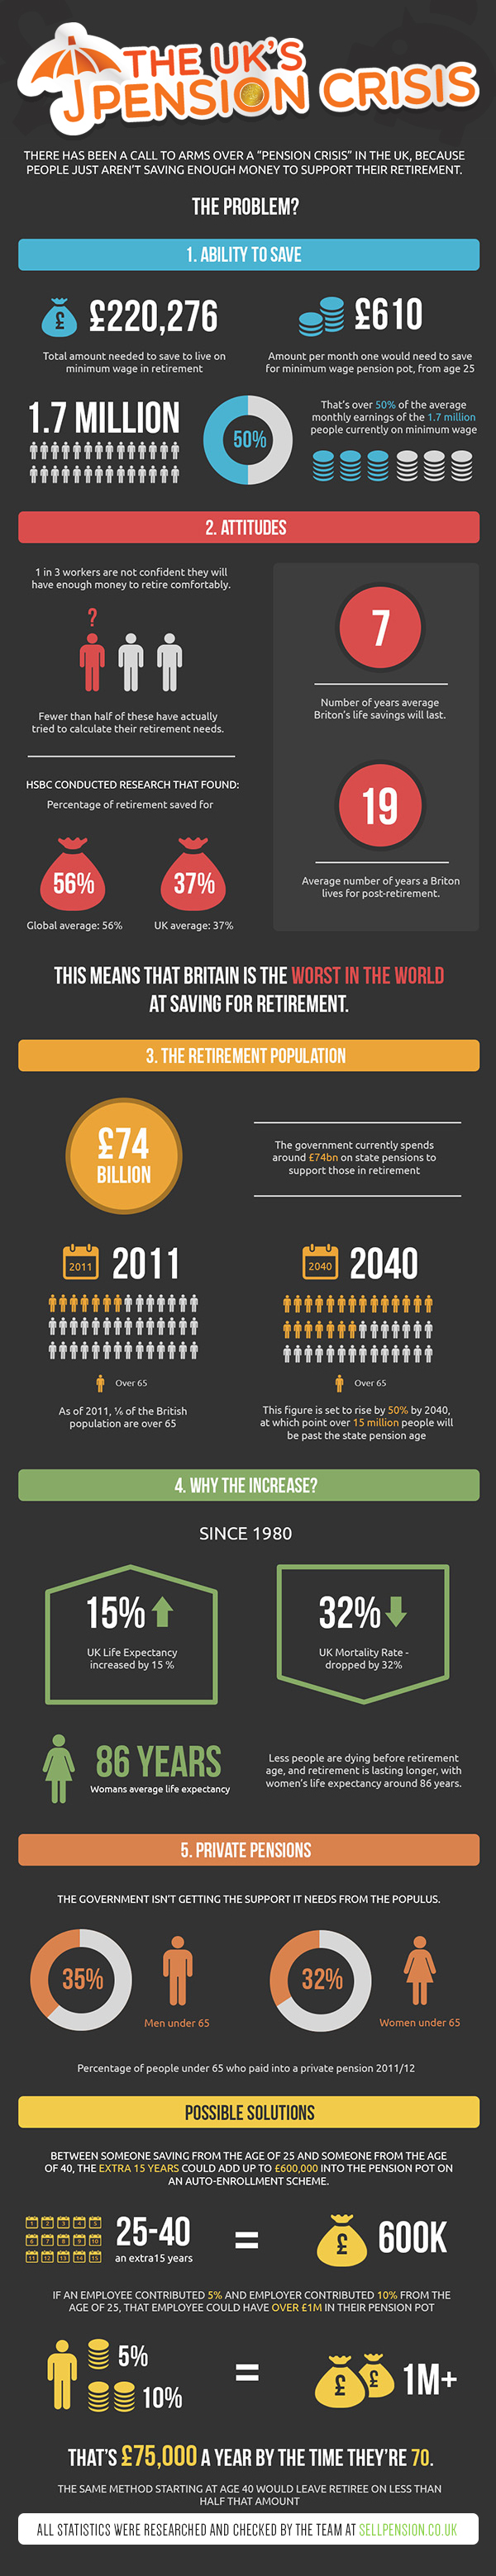 The UK's Pension Crisis]